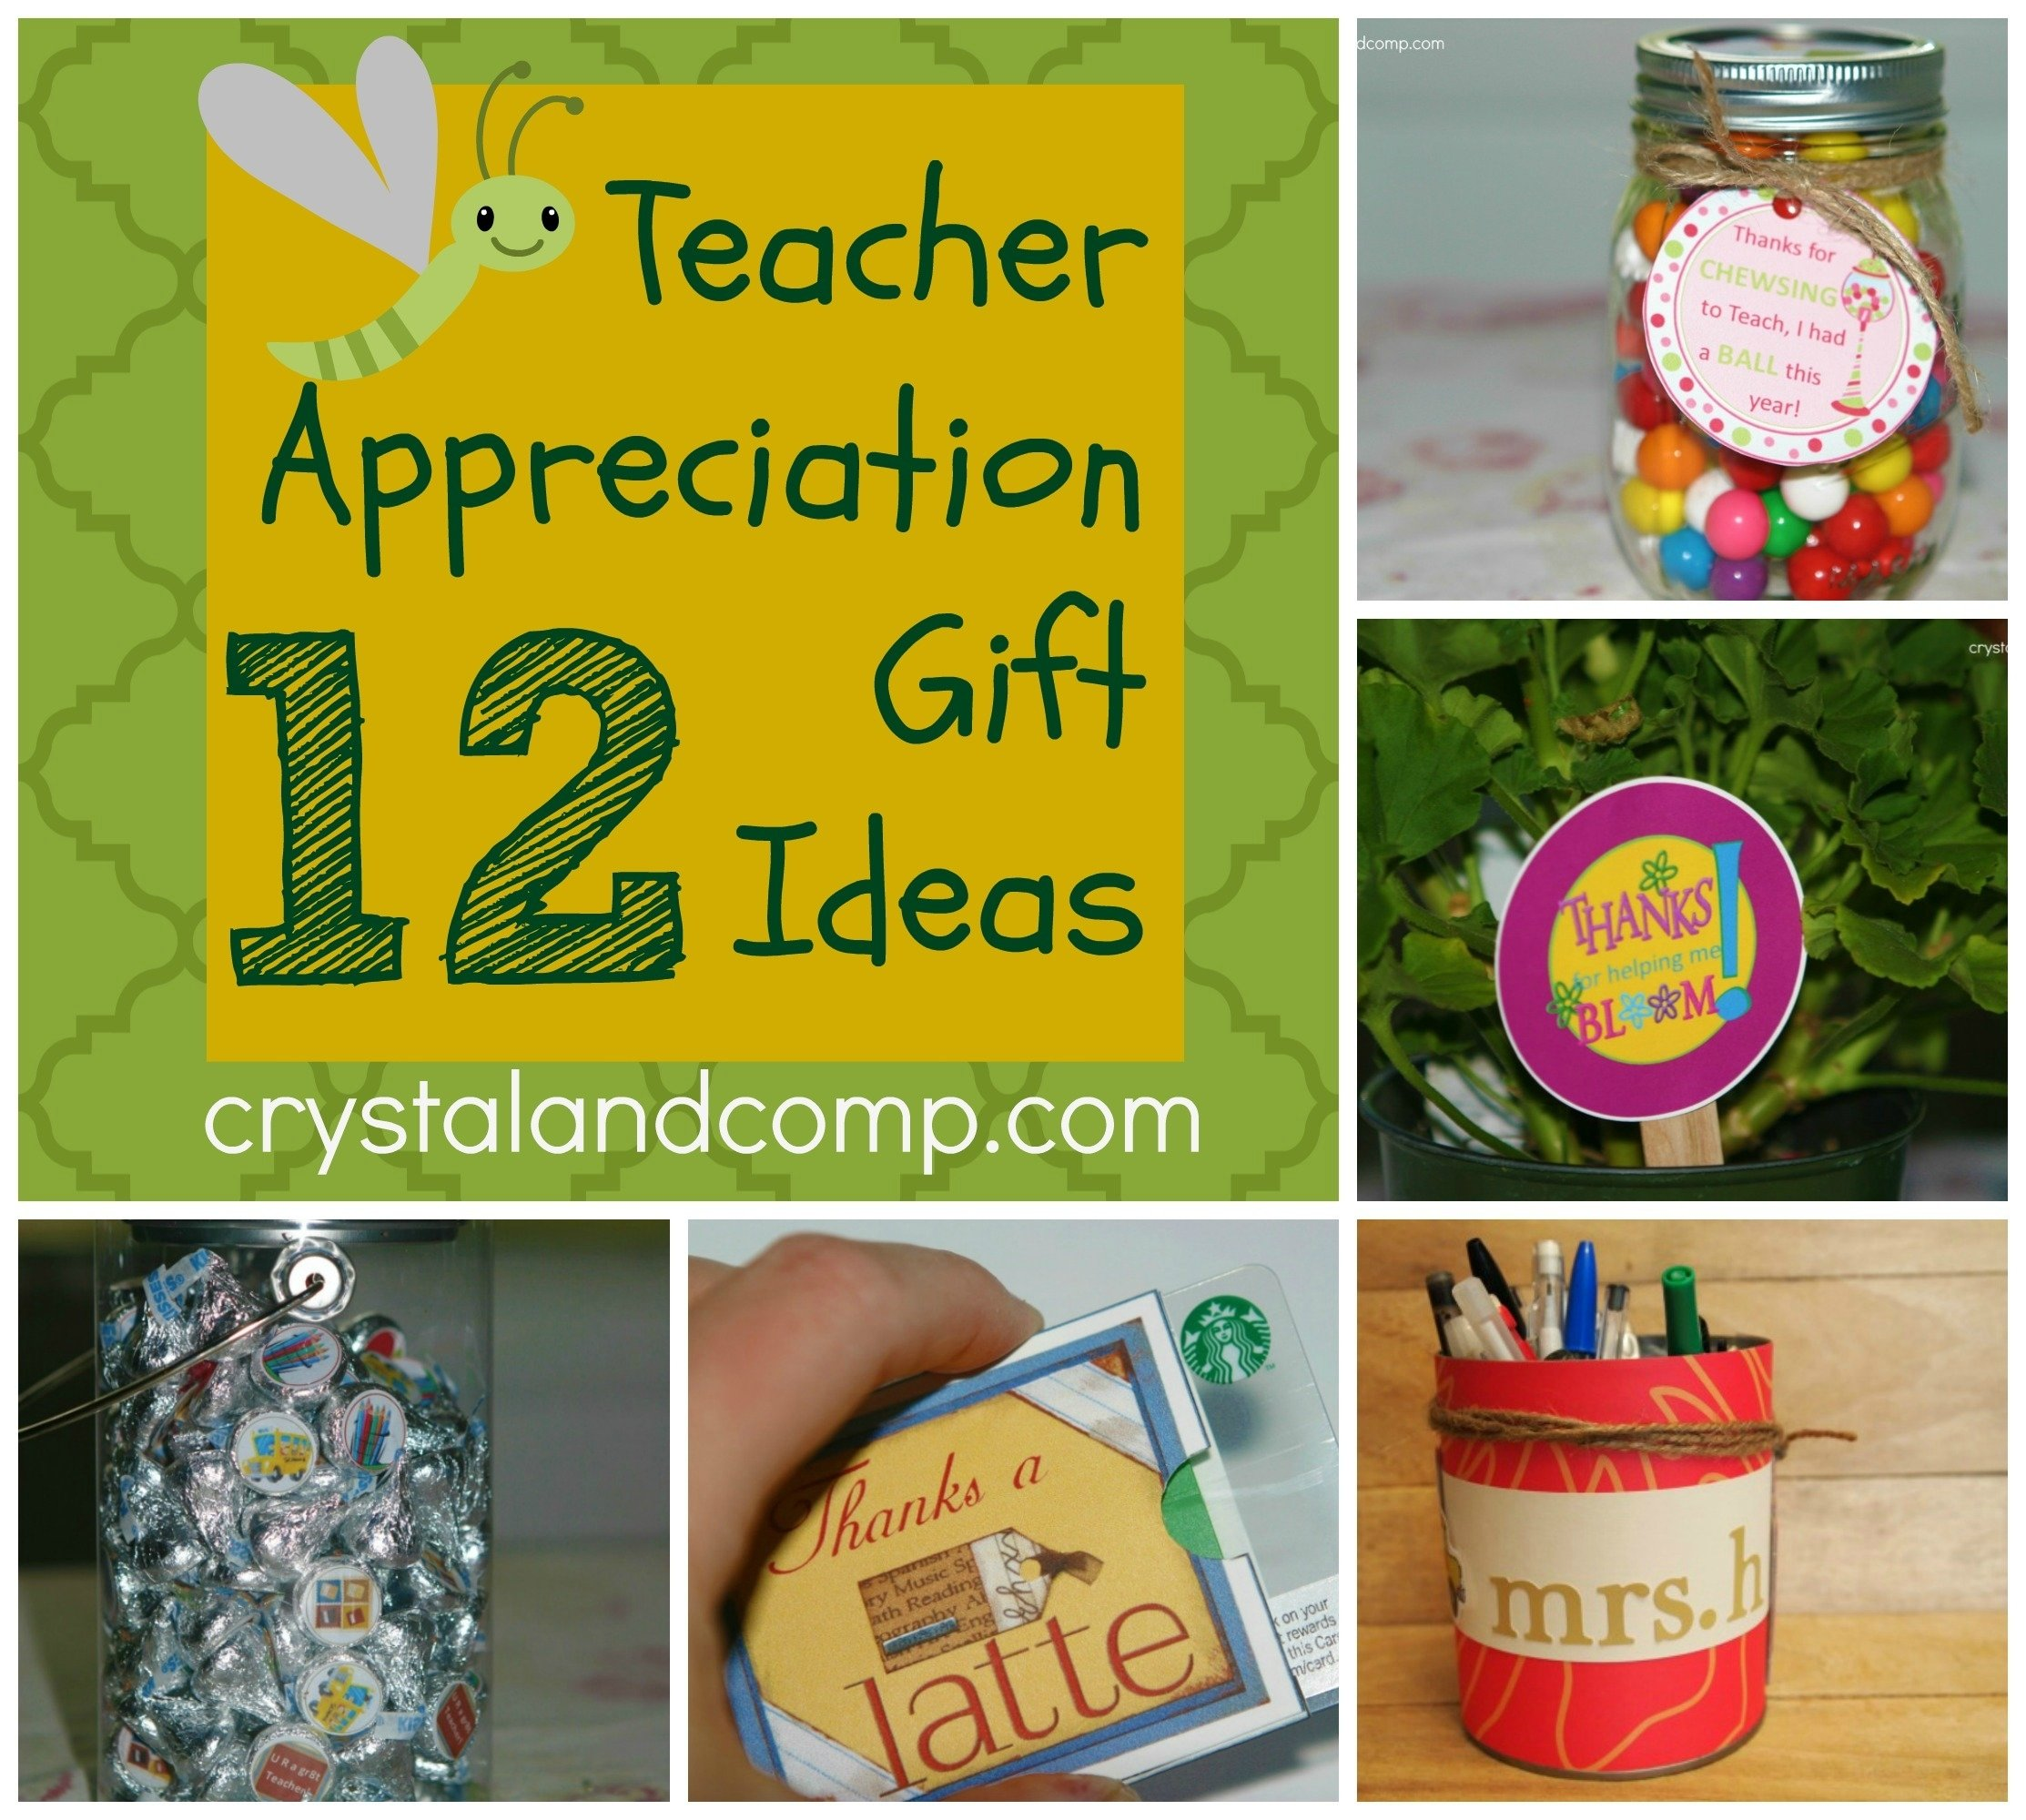 10 Awesome Teachers Appreciation Day Gift Ideas teacher appreciation gift ideas 2021